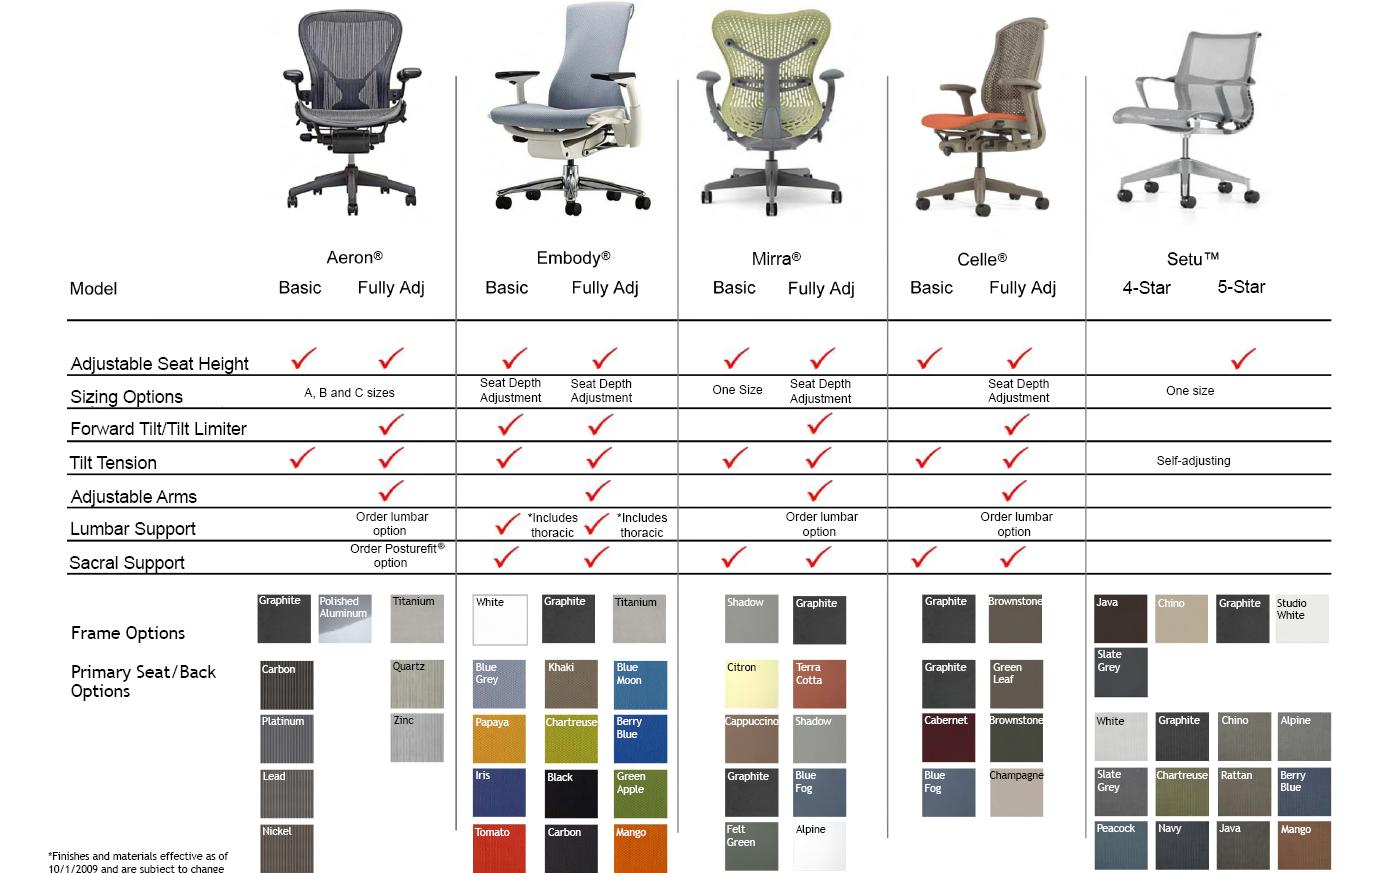 Herman Miller Chair Sizes Dining Room Covers Adelaide Smart Furniture Customer Service Team At A Glance Comparison Chart